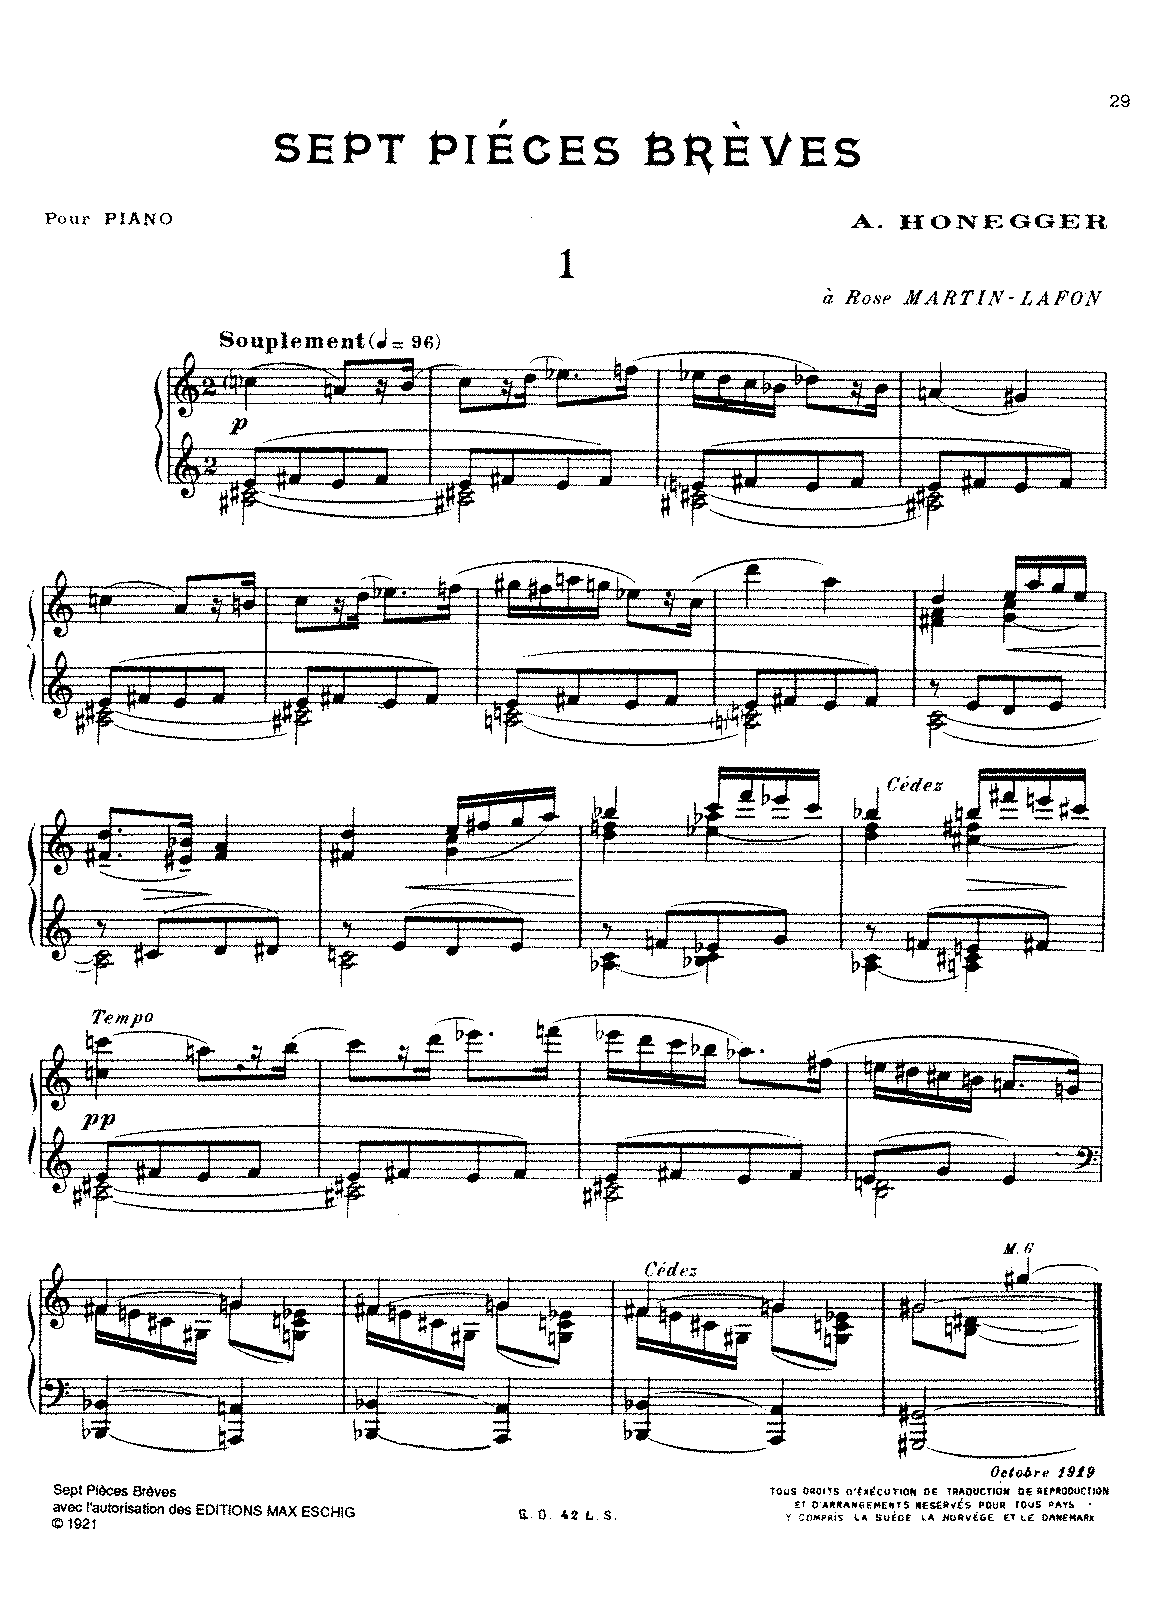 Honegger - 7 Pieces Breves (piano).pdf